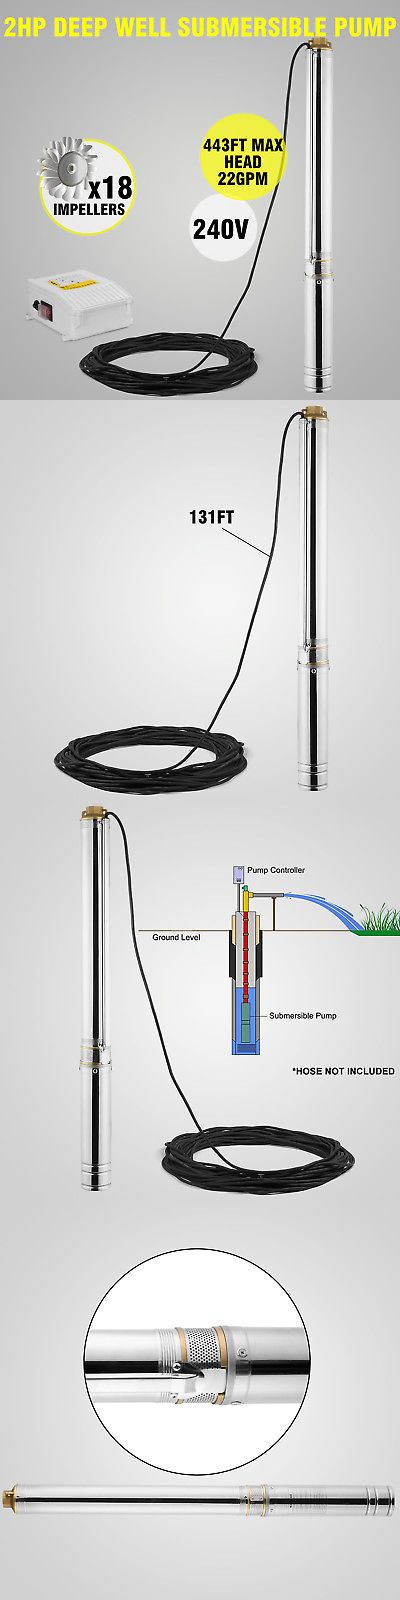 Lawn Sprinklers 20542: Submersible Pump, 4 Deep Well, 2 Hp, 220V, 22 Gpm, 443 Ft Max, Long Life -> BUY IT NOW ONLY: $184.5 on eBay!